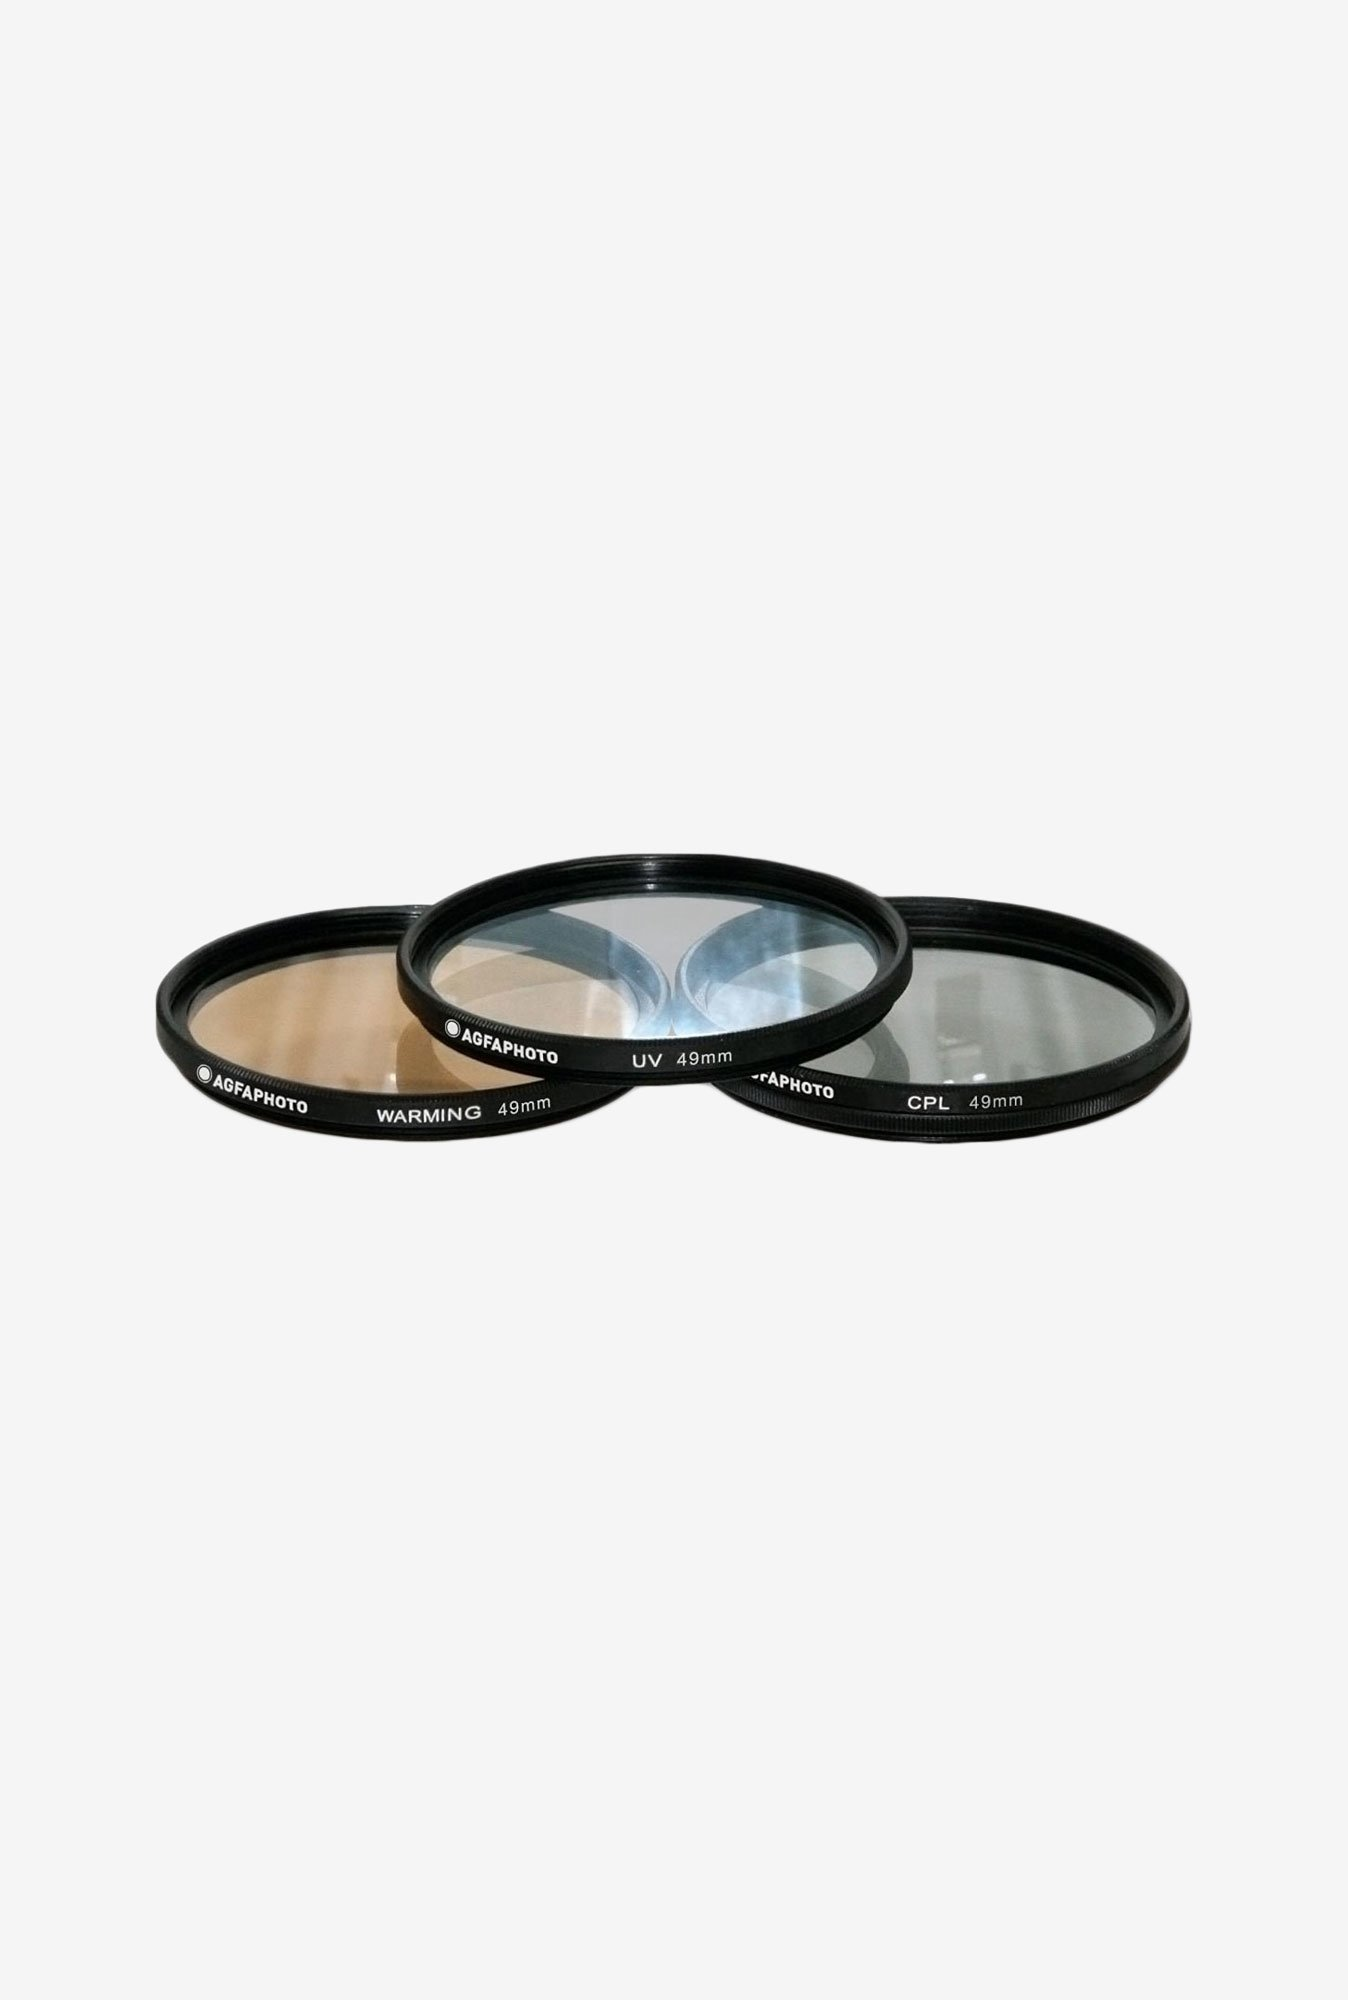 Zeikos APFTK49 49mm 3- Piece Professional Filter Kit (Black)